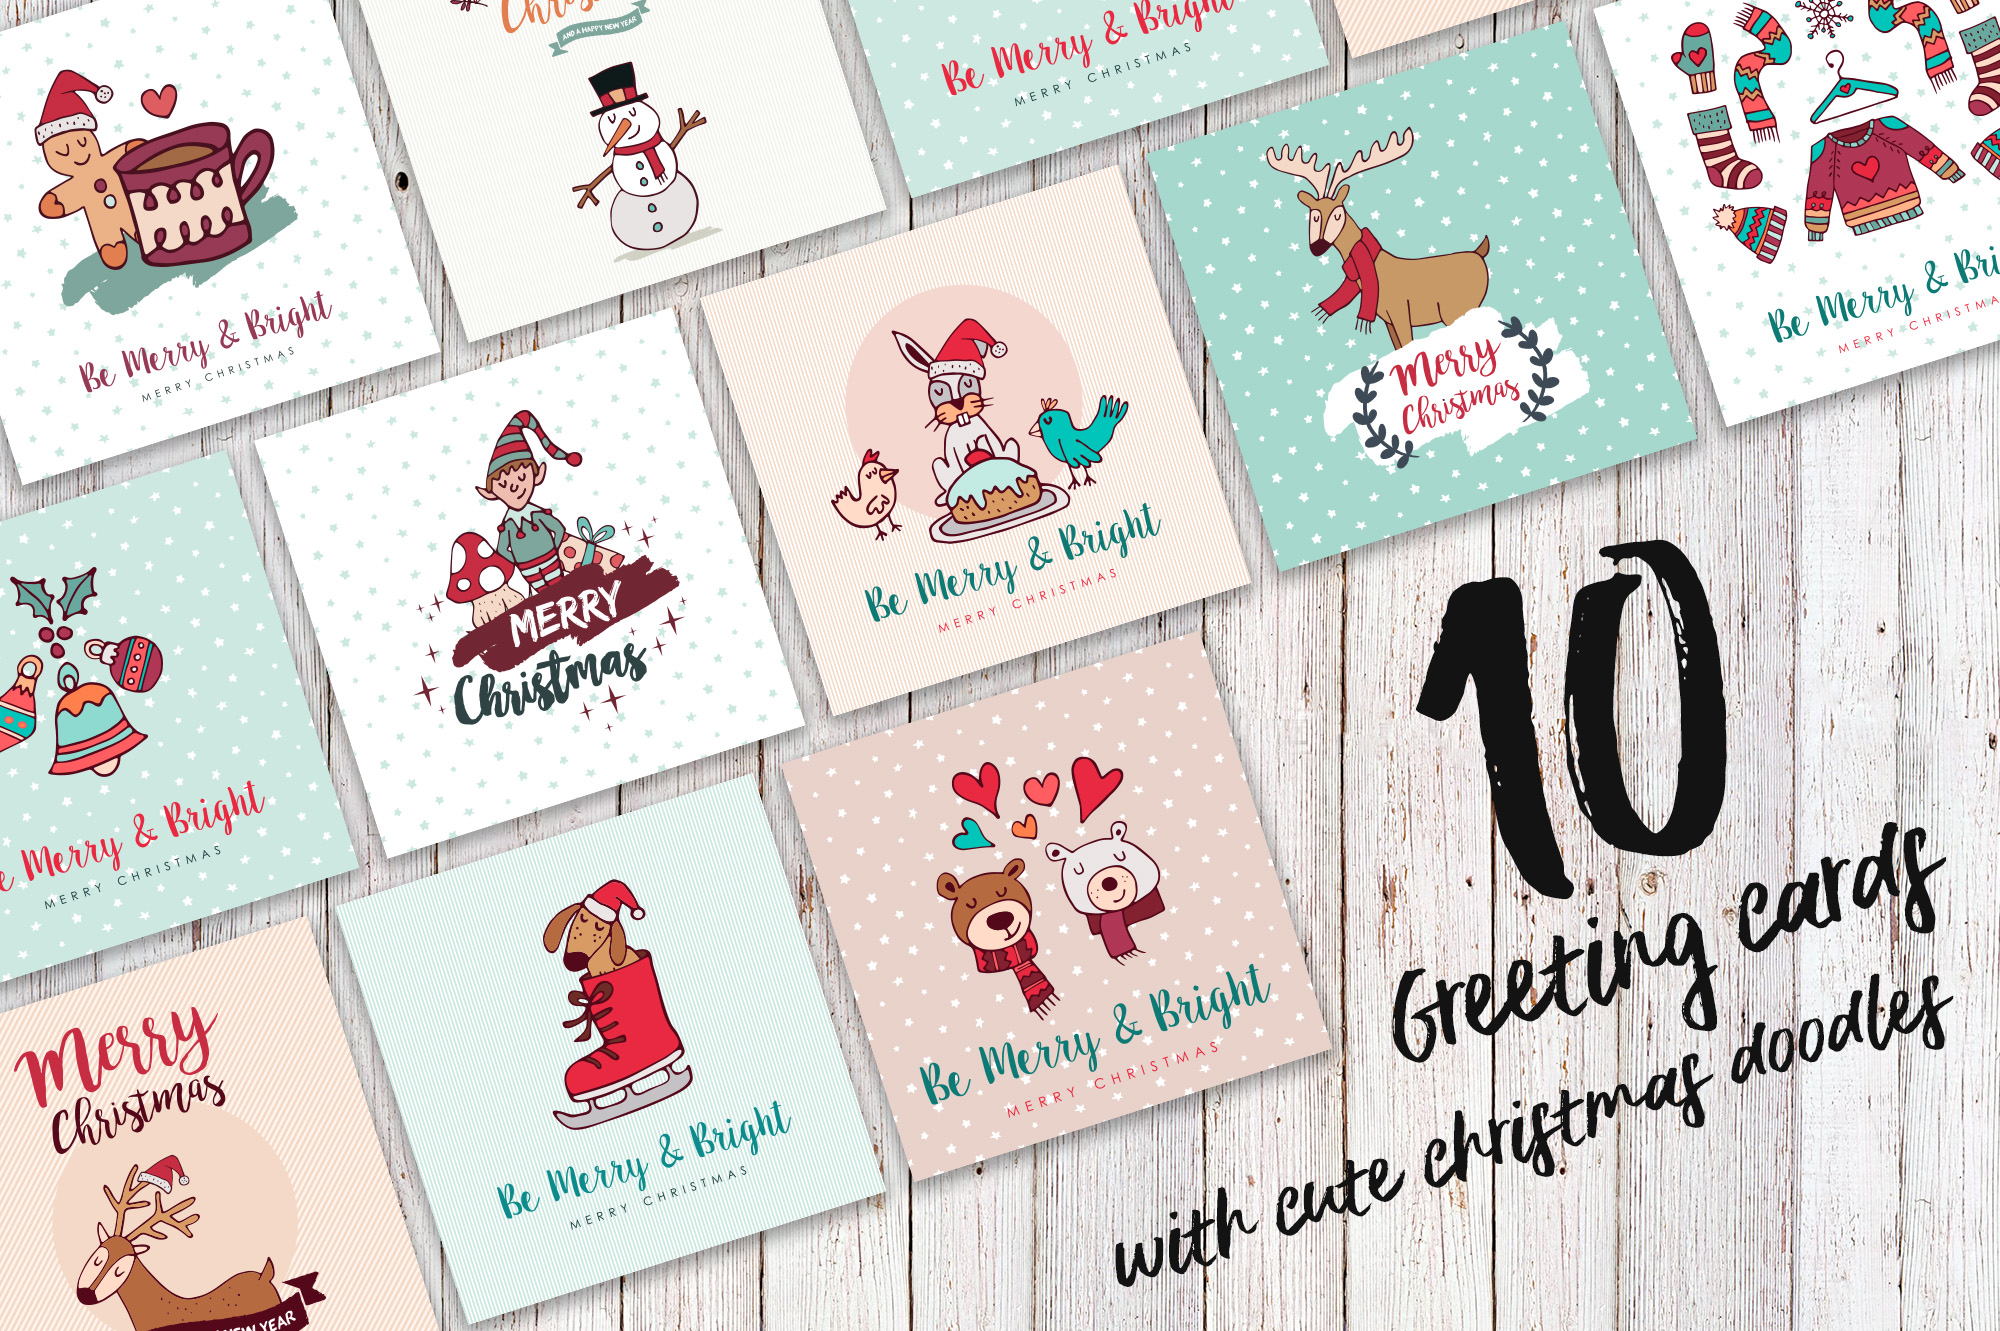 Sweet Christmas: hand drawn set with cute animals example image 2